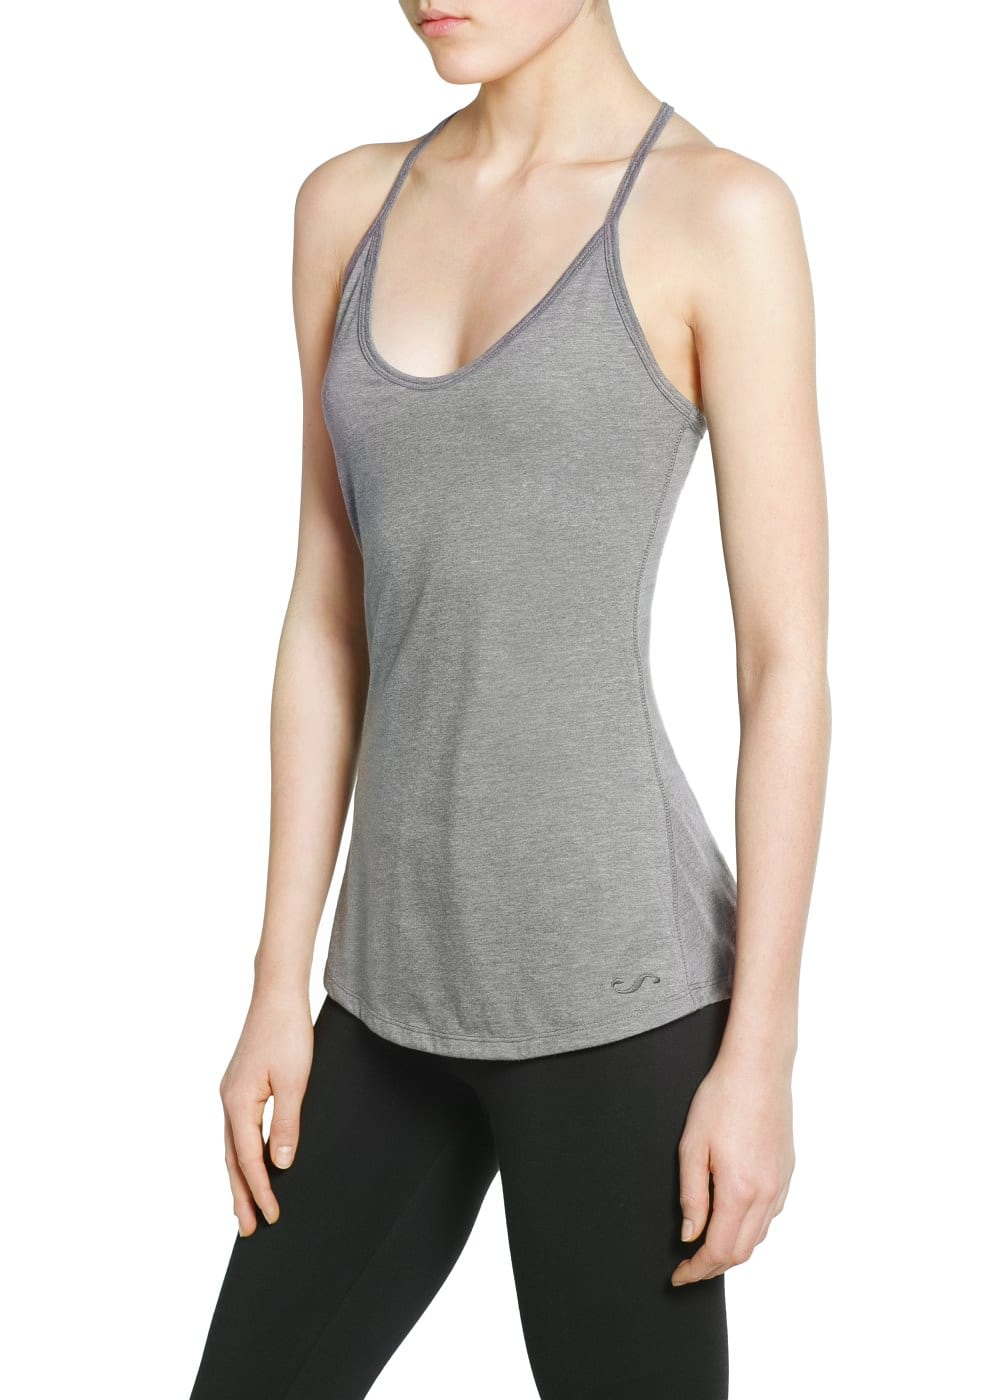 Yoga - T-shirt bretelles confort